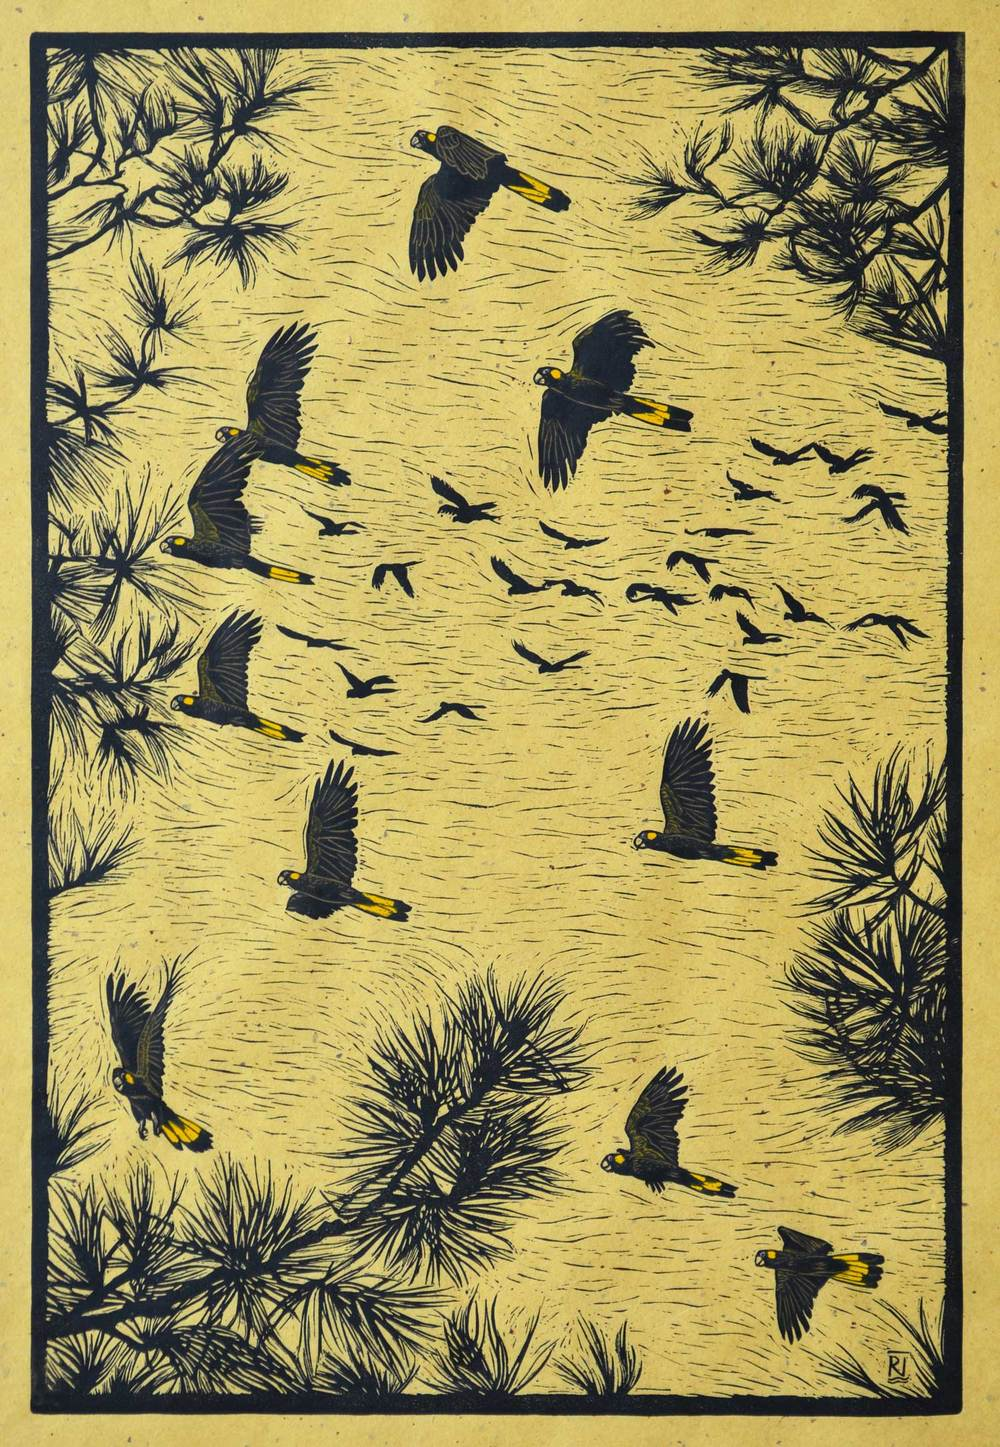 Yellow-tailed black cockatoos in flight  63 x 42 cm    Edition of 50  Hand coloured linocut on handmade Japanese paper  $1,100